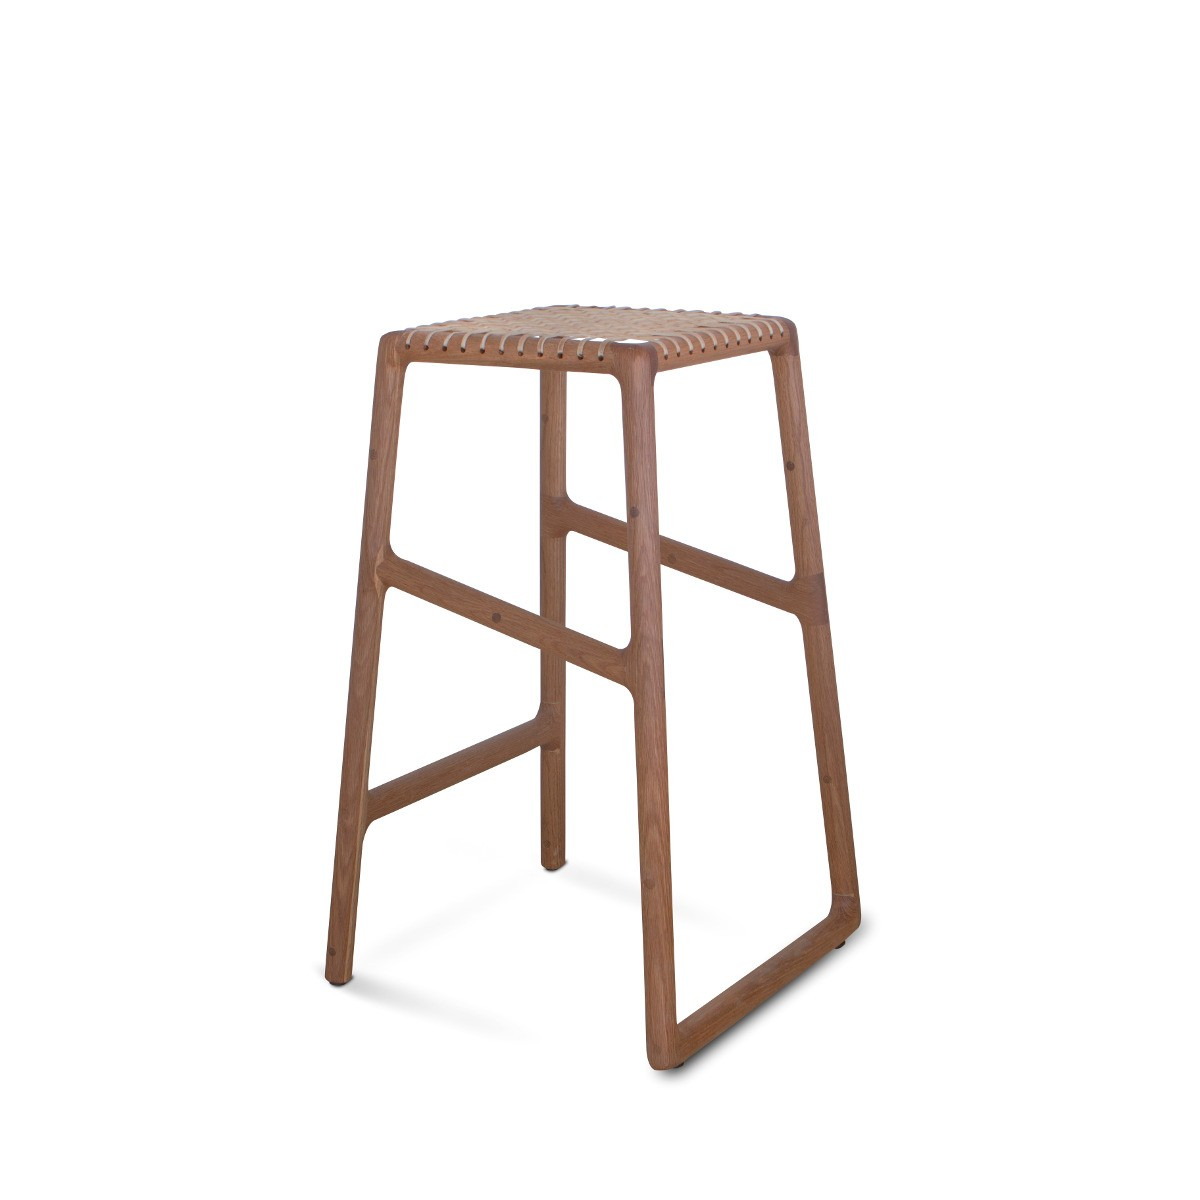 https://piffany.eu/wp-content/uploads/2019/05/Olso-Bar-Chair-1.jpg